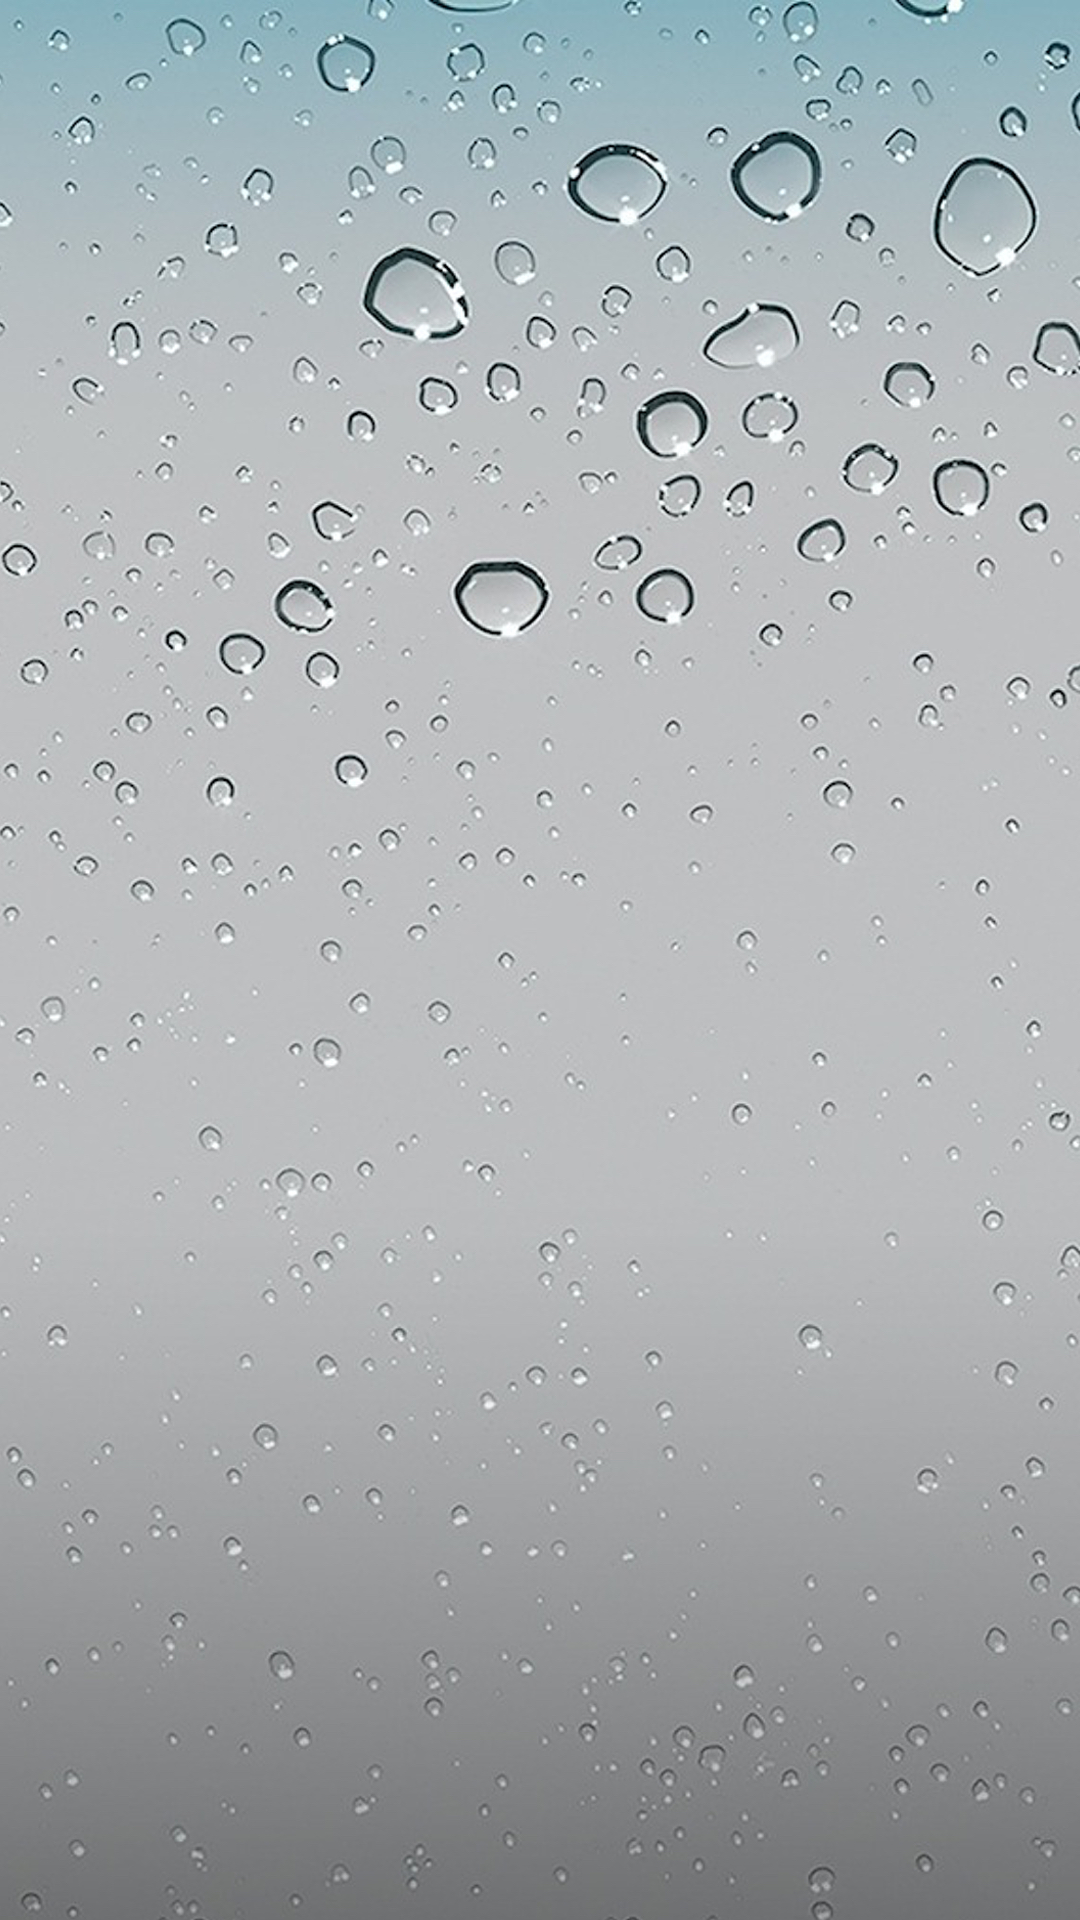 Orginal Raindrop Wallpaper Customized For Iphone 6 Plus